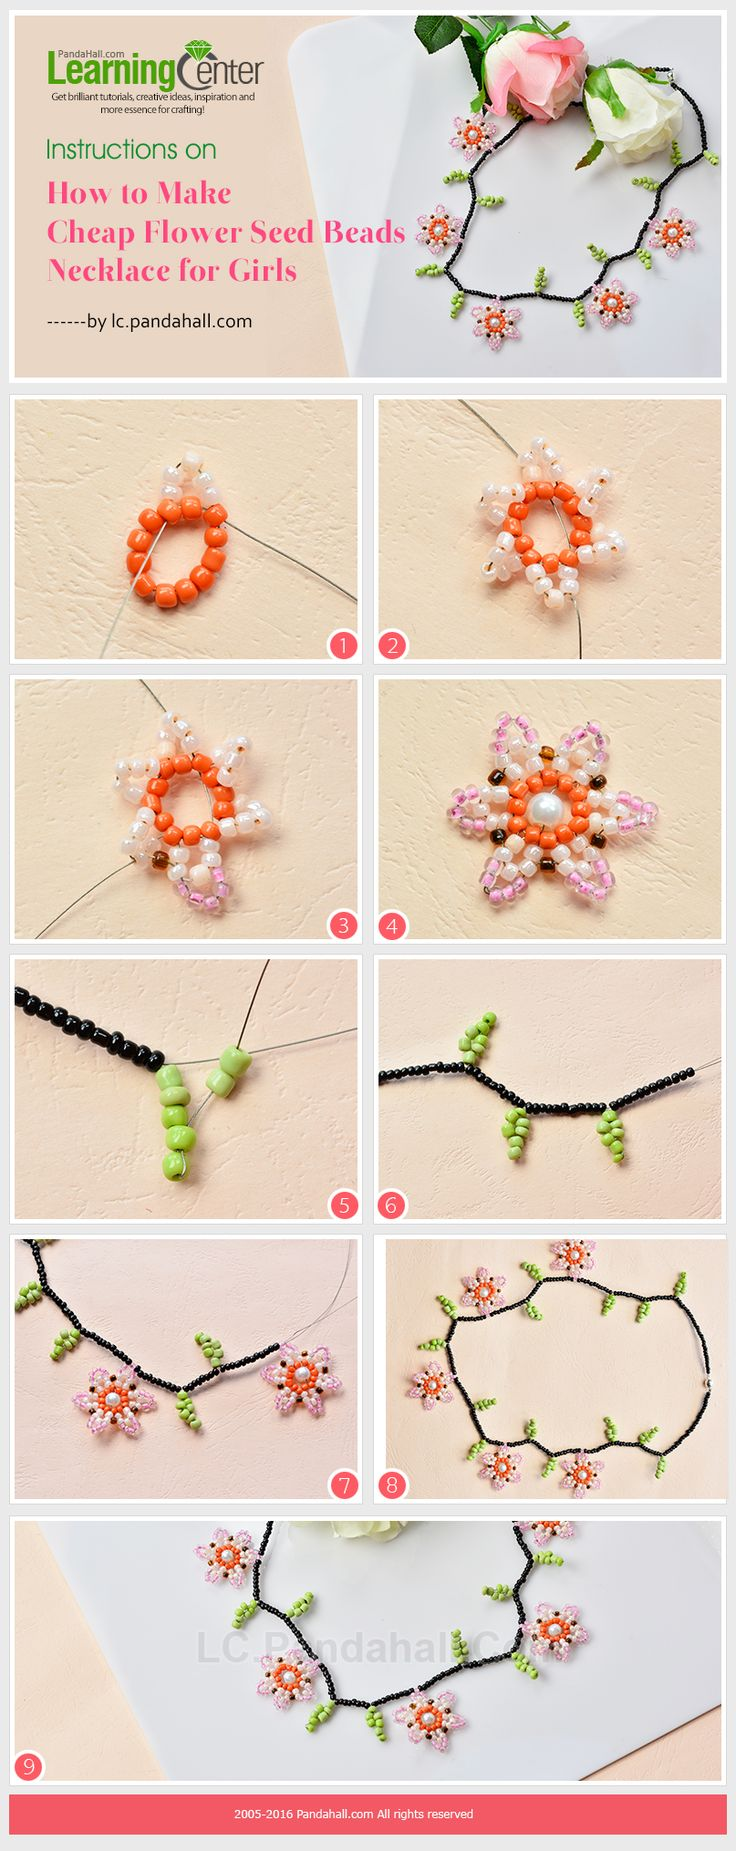 Instructions on How to Make Cheap Flower Seed Beads Necklace for Girls from LC.Pandahall.com